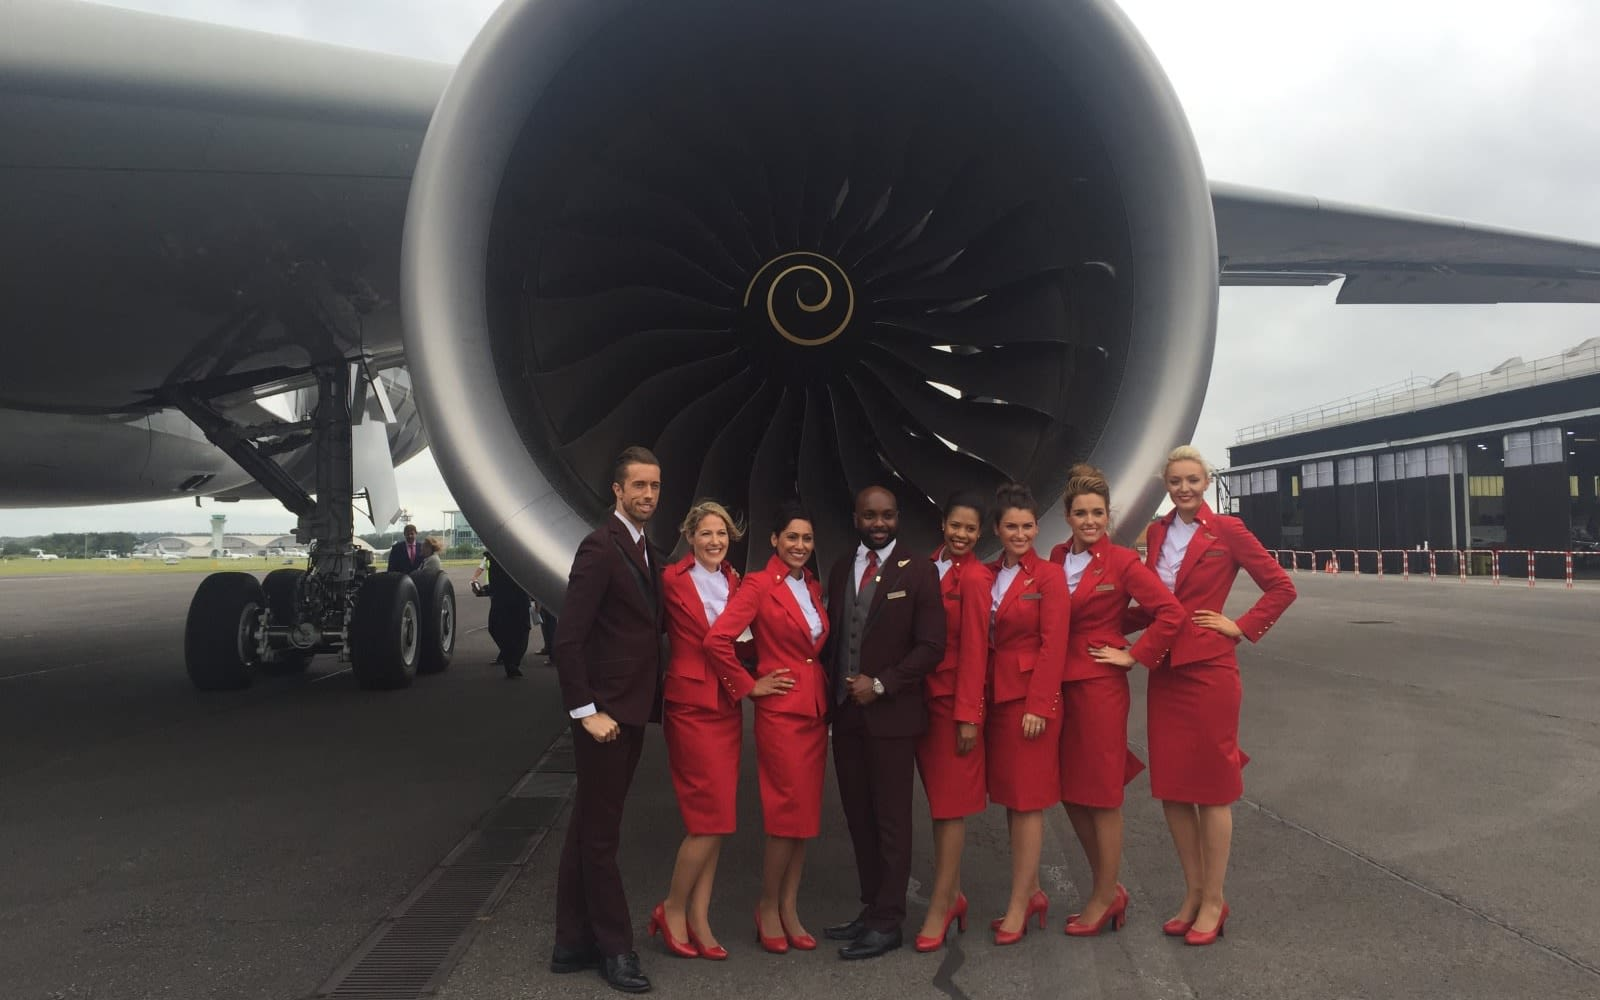 Cabin crew members standing beside an aircraft